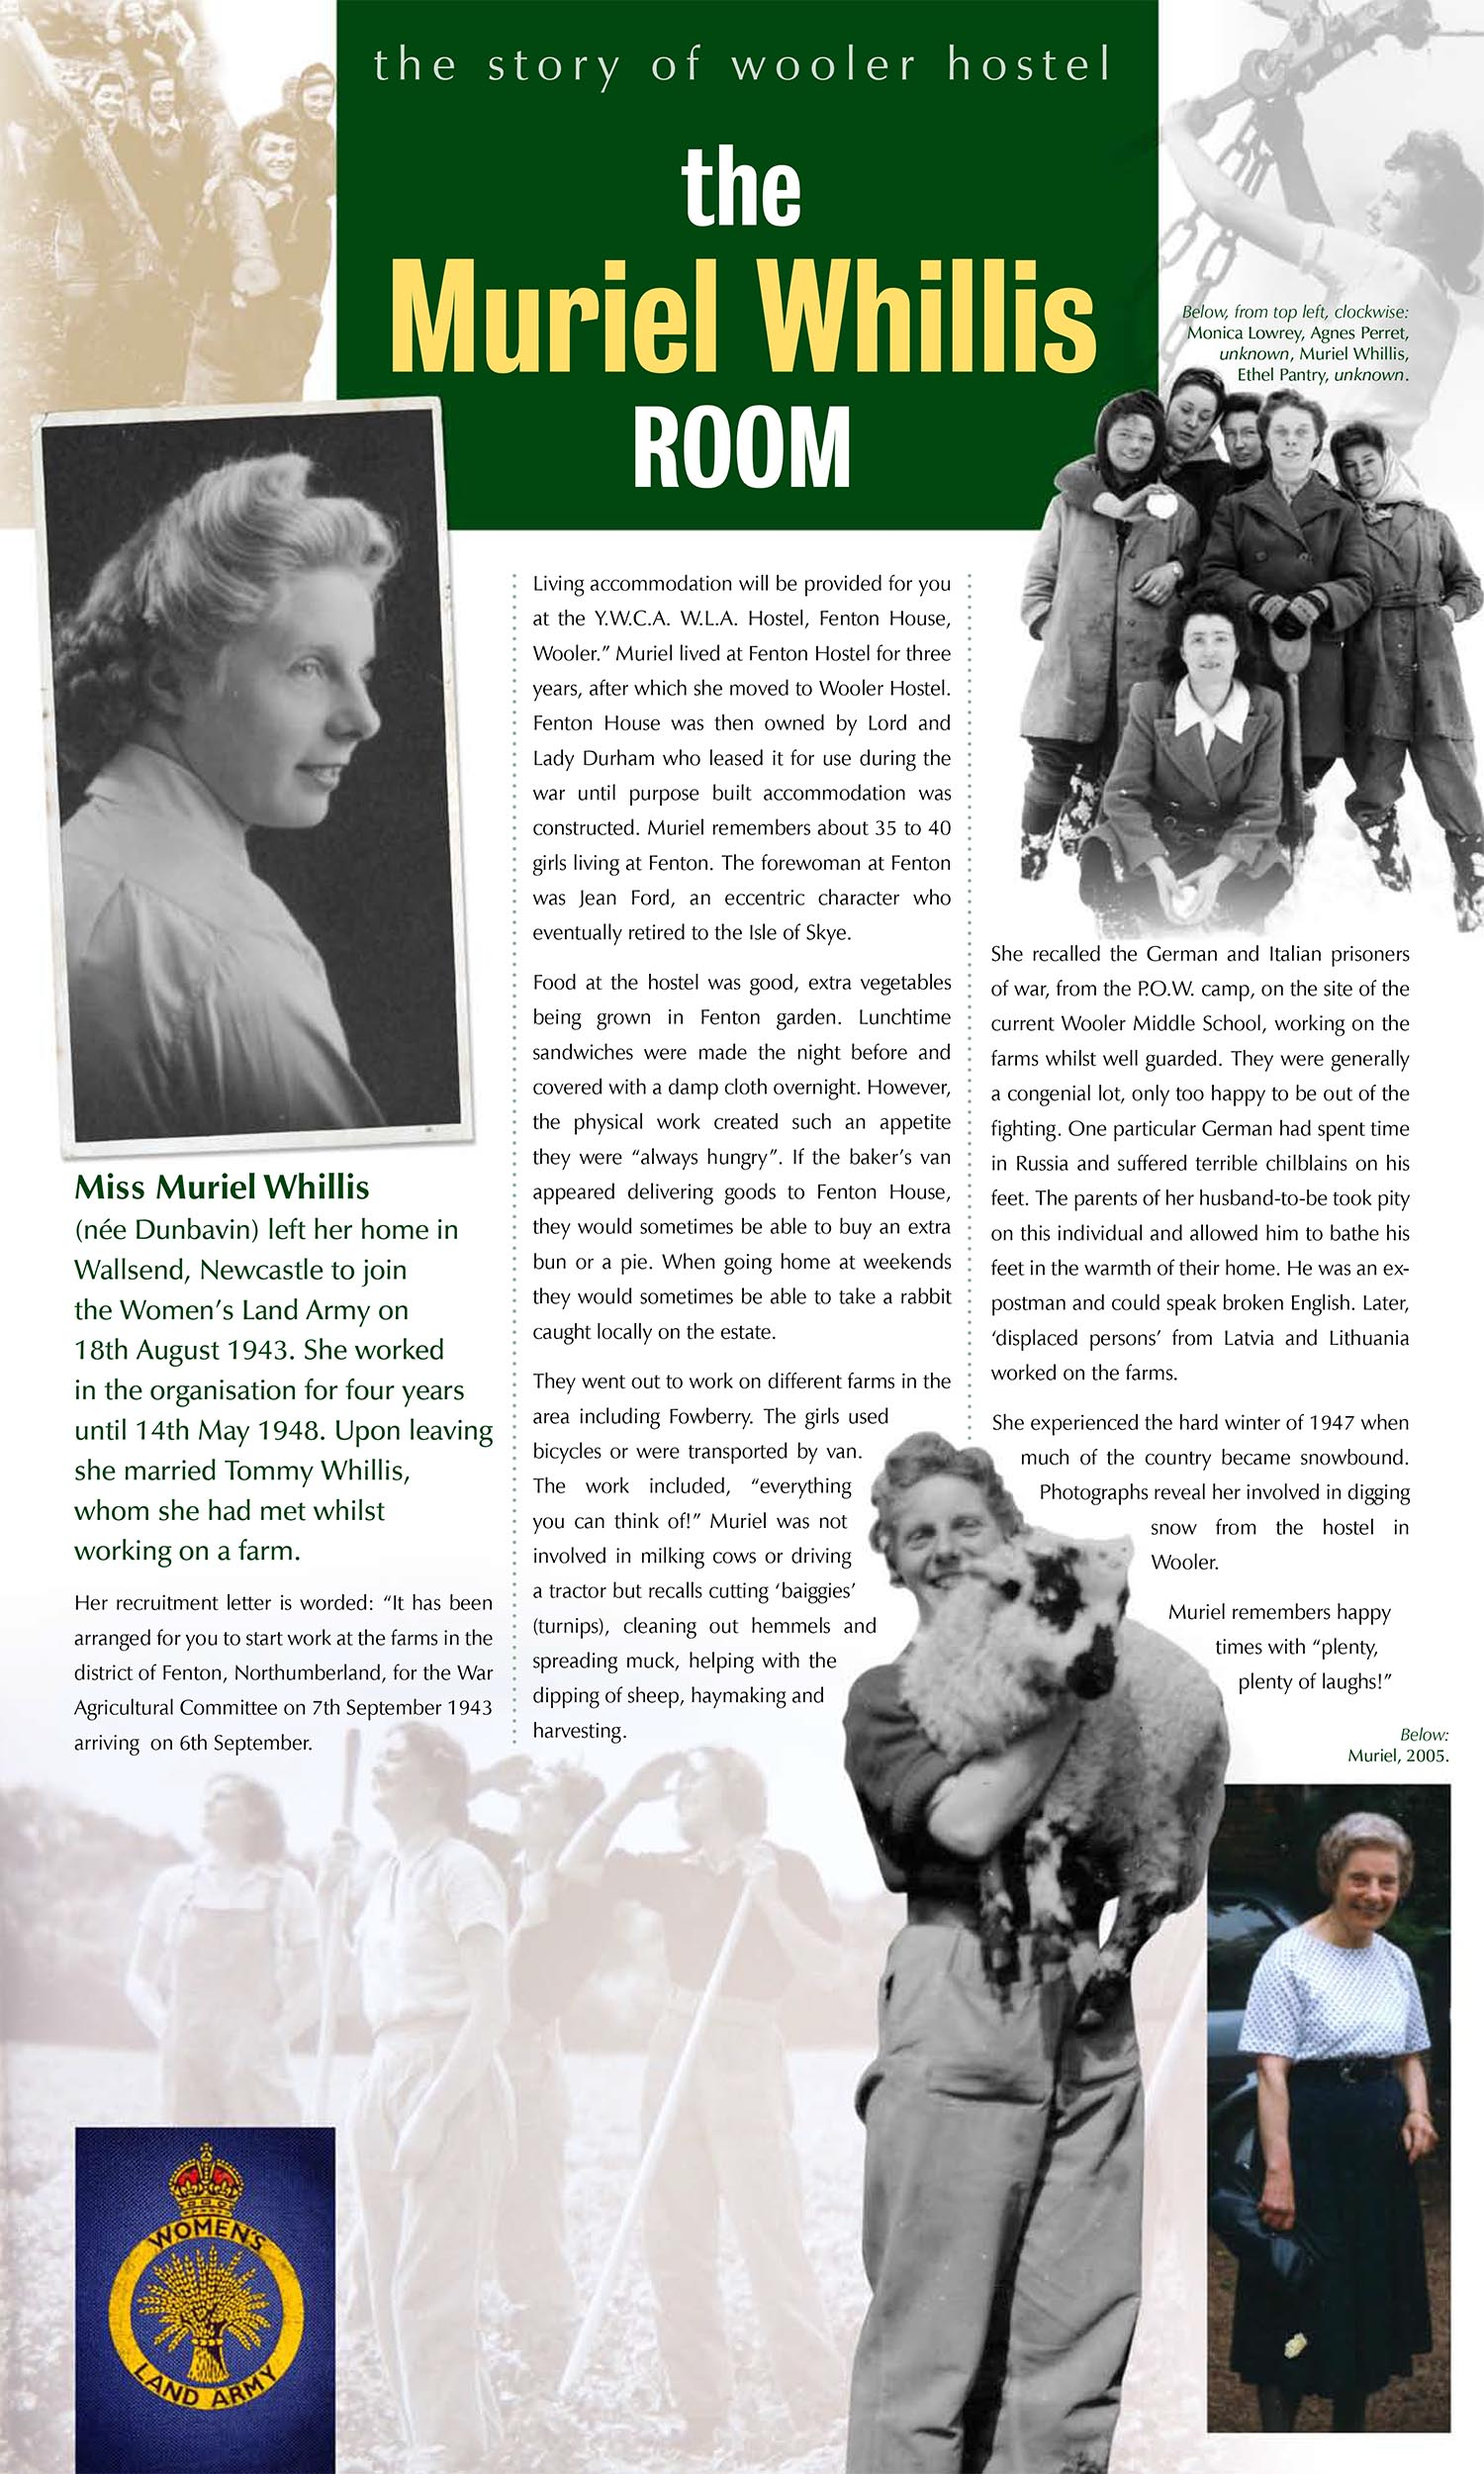 Introducing the 7th Land Girl of Wooler Hostel, Muriel Whillis.